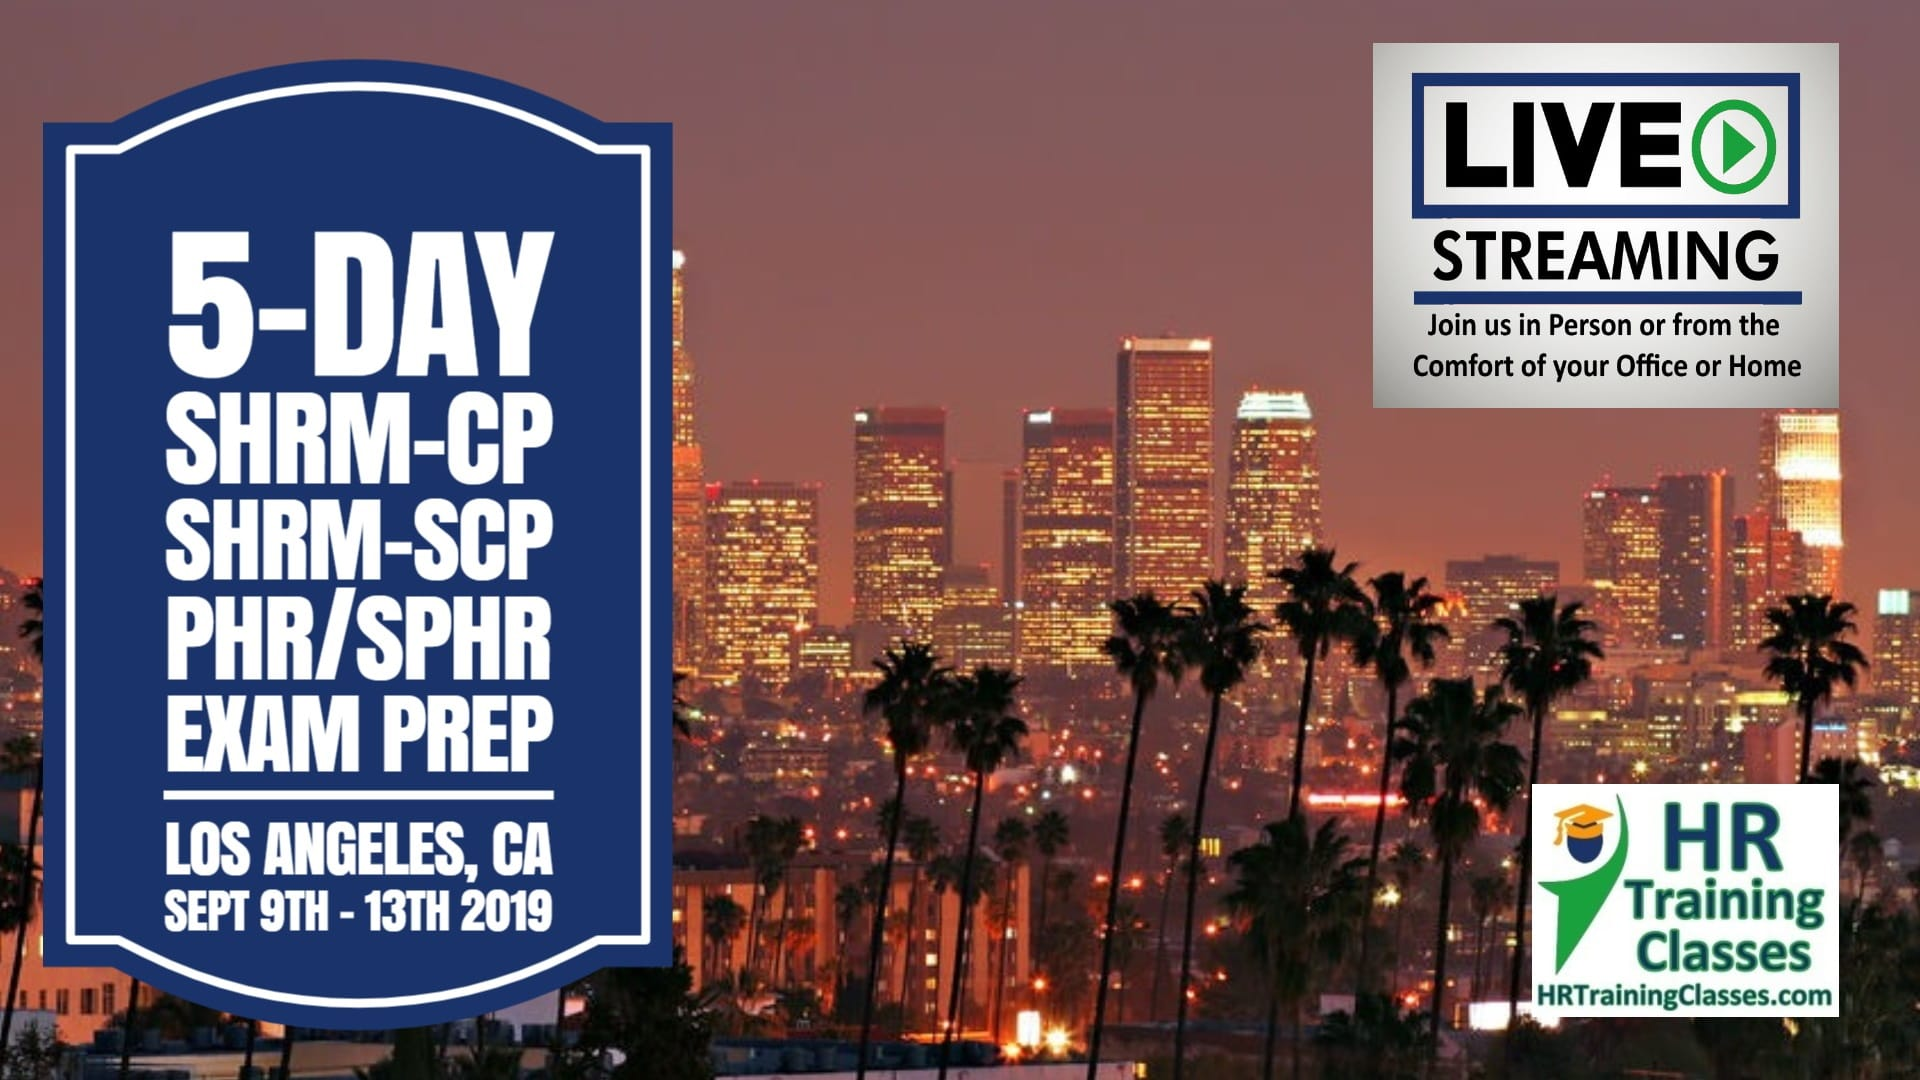 5 Day SHRM-CP, SHRM-SCP, PHR, SPHR Exam Prep Boot Camp in Los Angeles starting 9-9-19 and led by Elga lejarza-Penn remote option